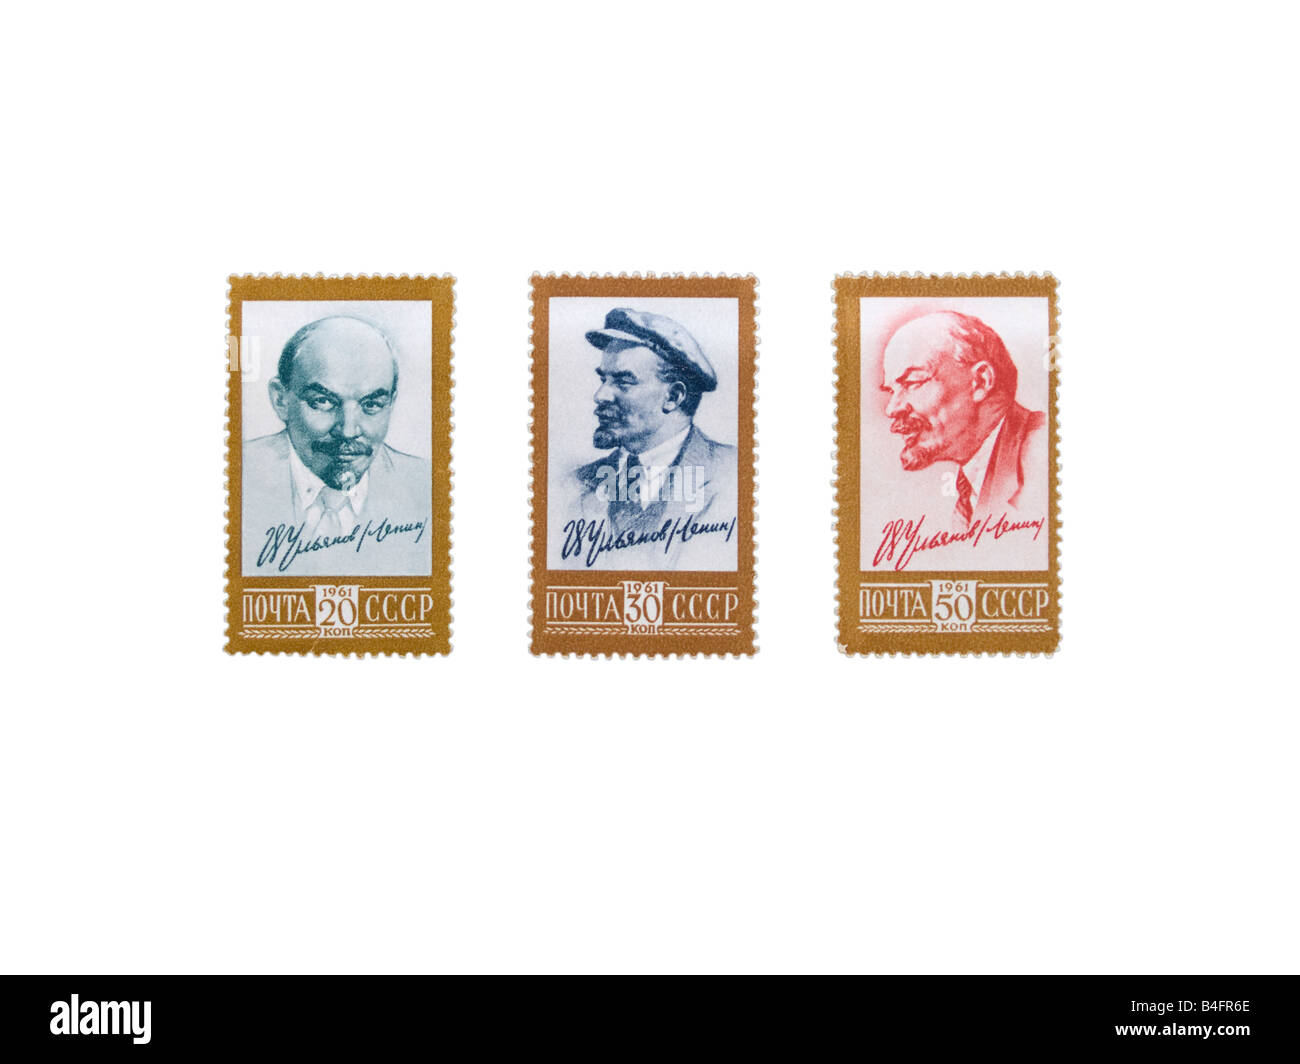 Historic Postage Stamps Of The Ussr Stock Photos & Historic